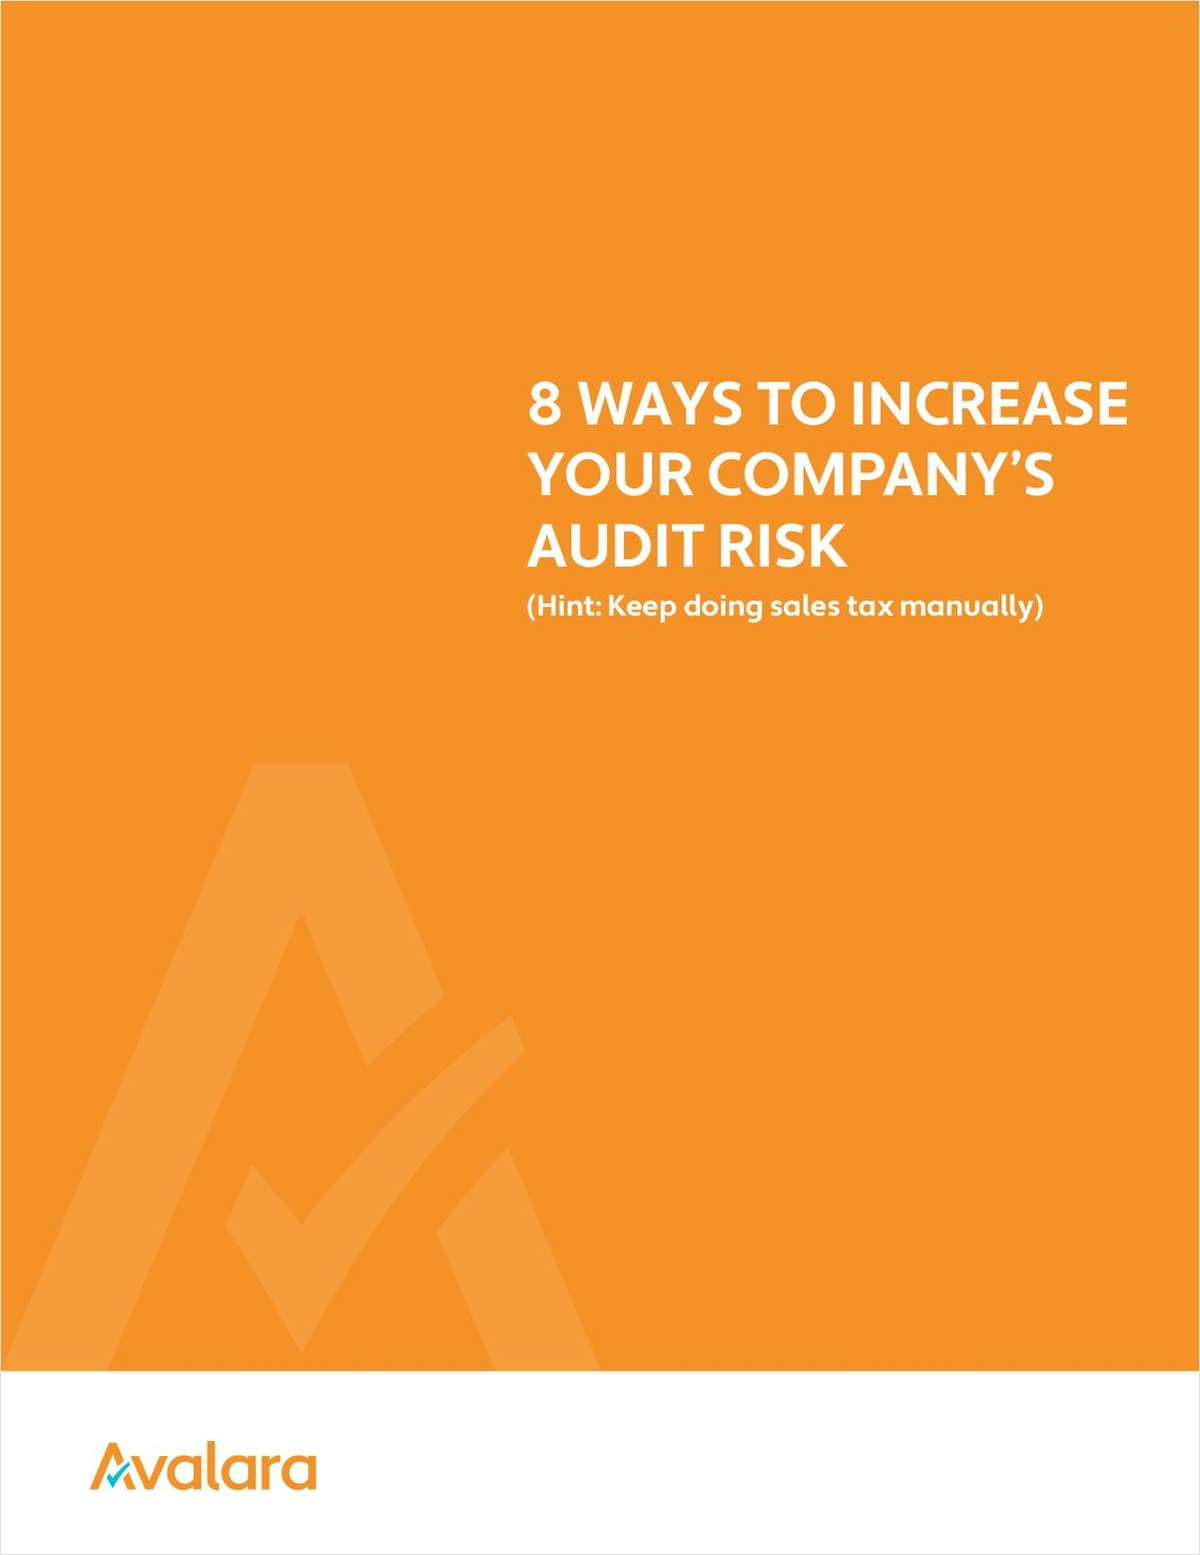 8 Ways to Increase Your Company's Audit Risk.  (Hint: Keep Doing Sales Tax Manually)